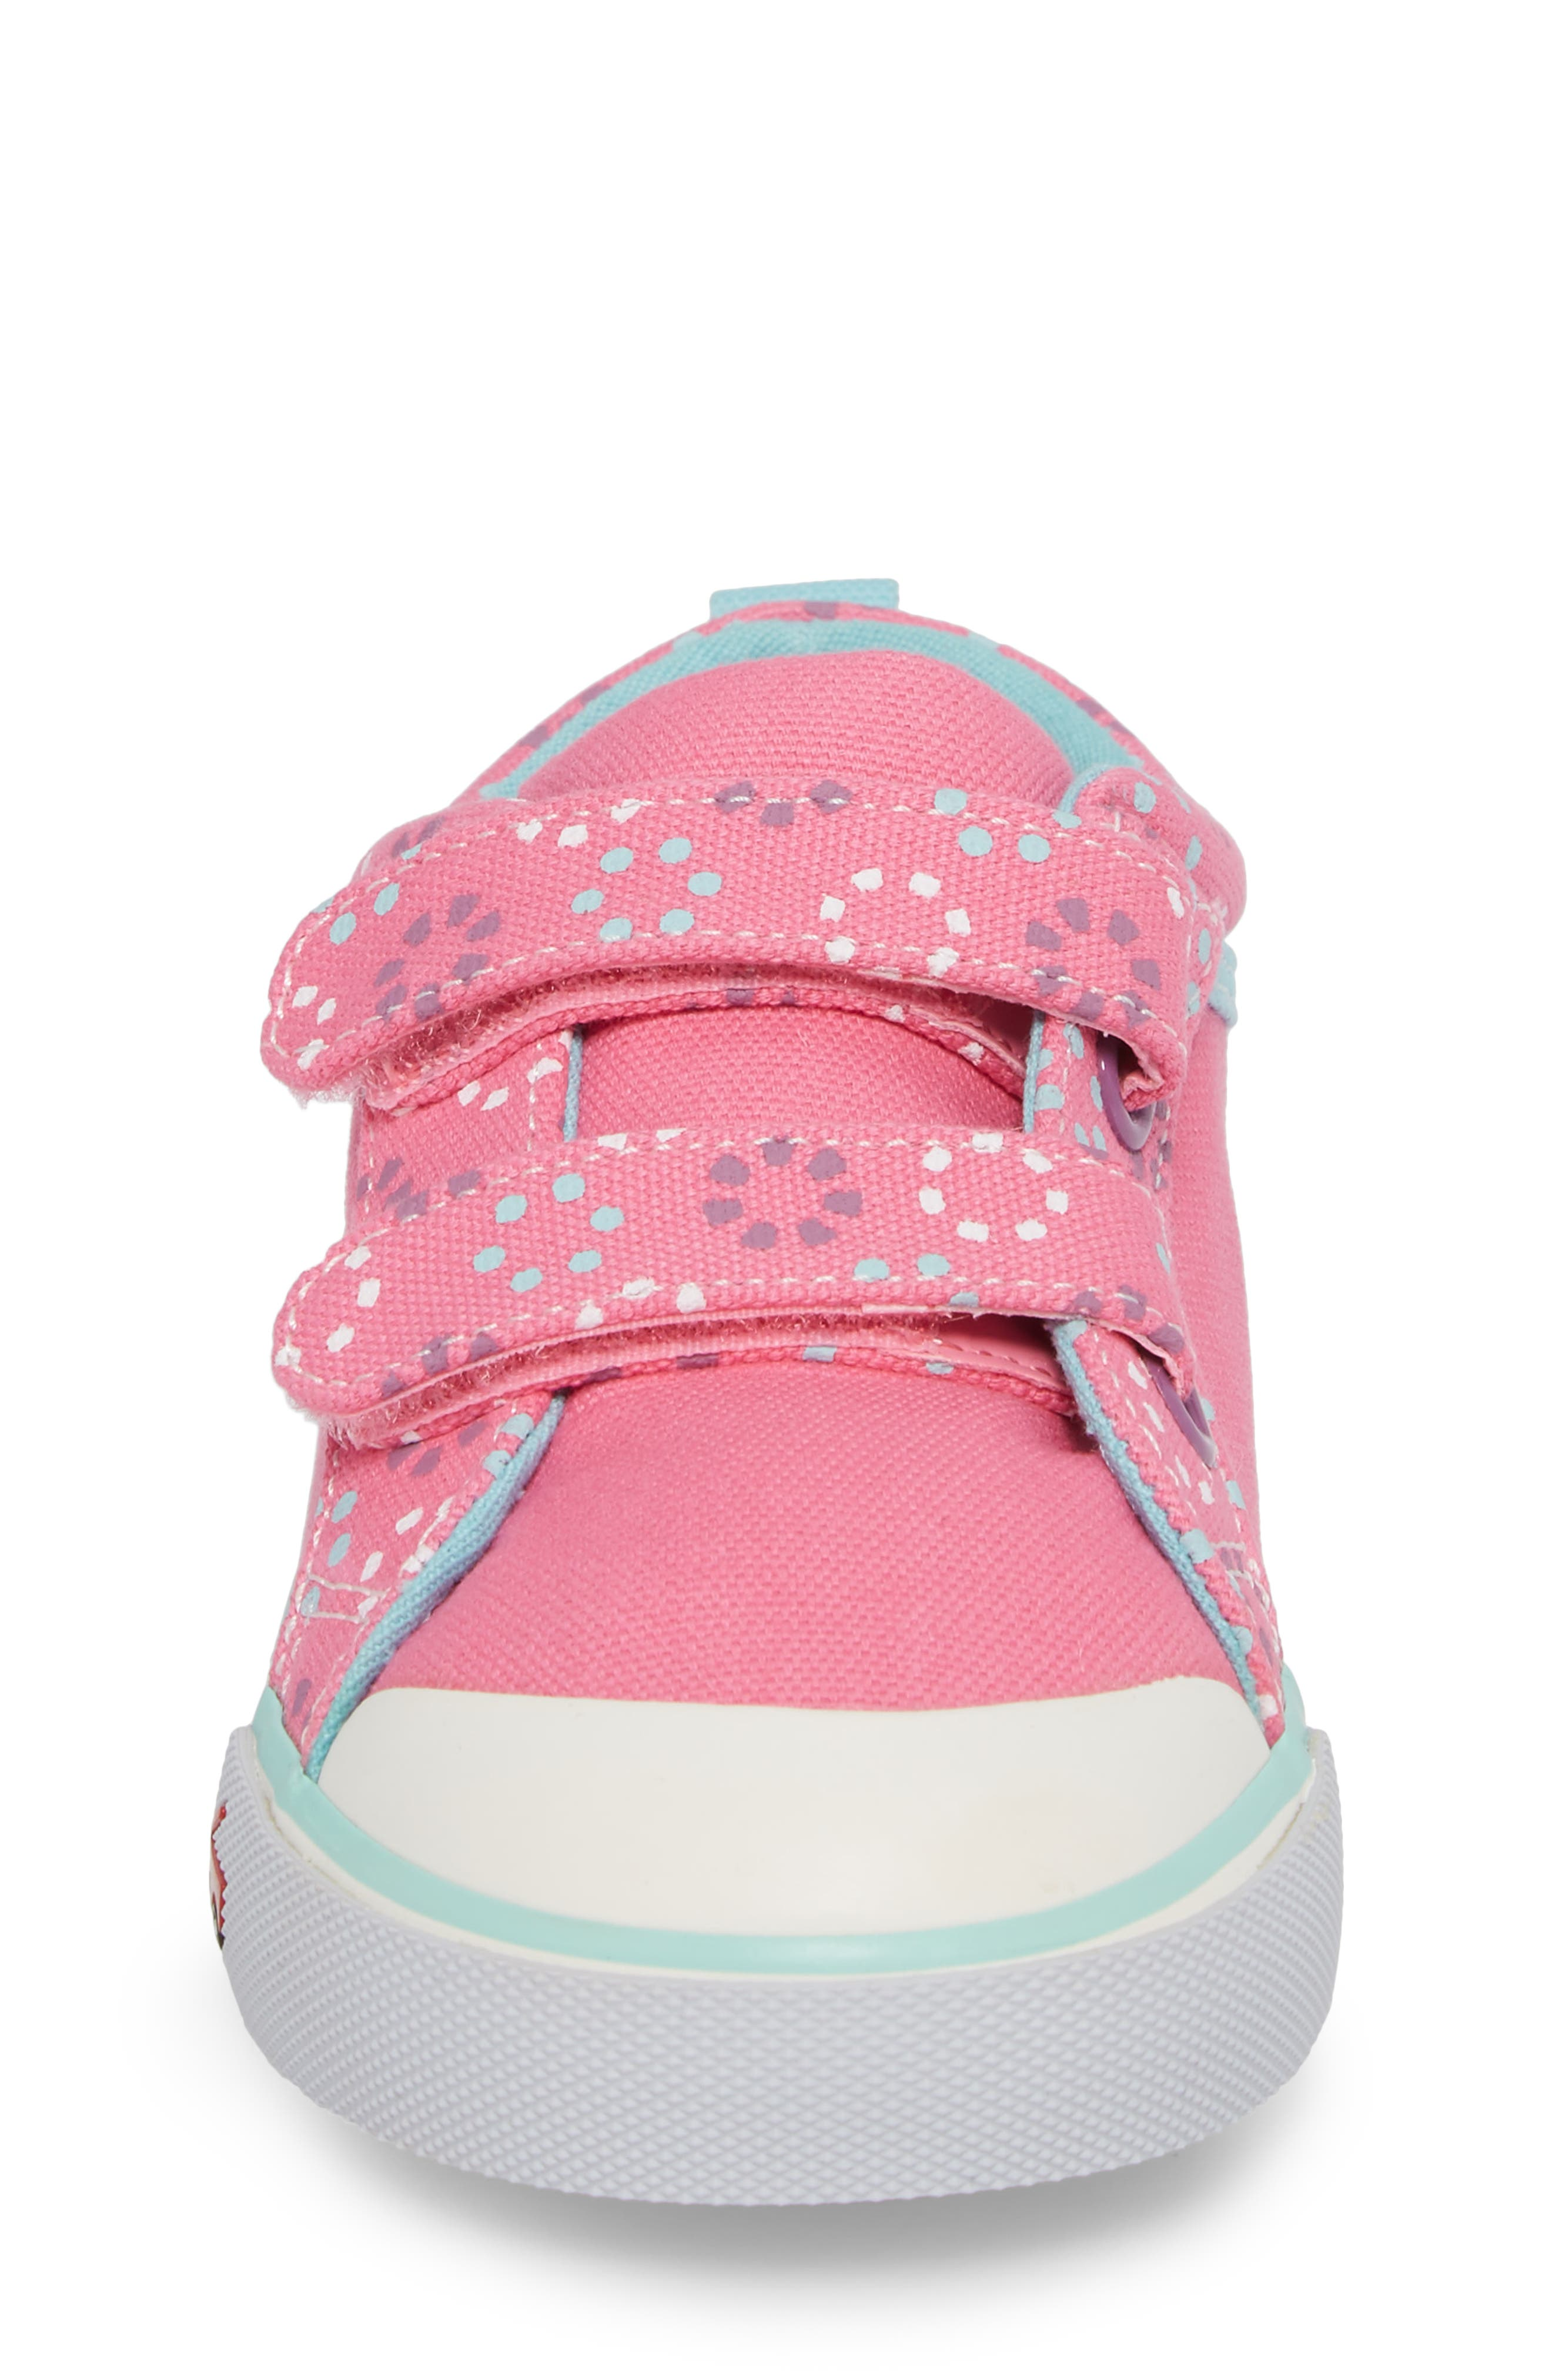 'Robyne' Sneaker,                             Alternate thumbnail 4, color,                             Hot Pink Circle Mix